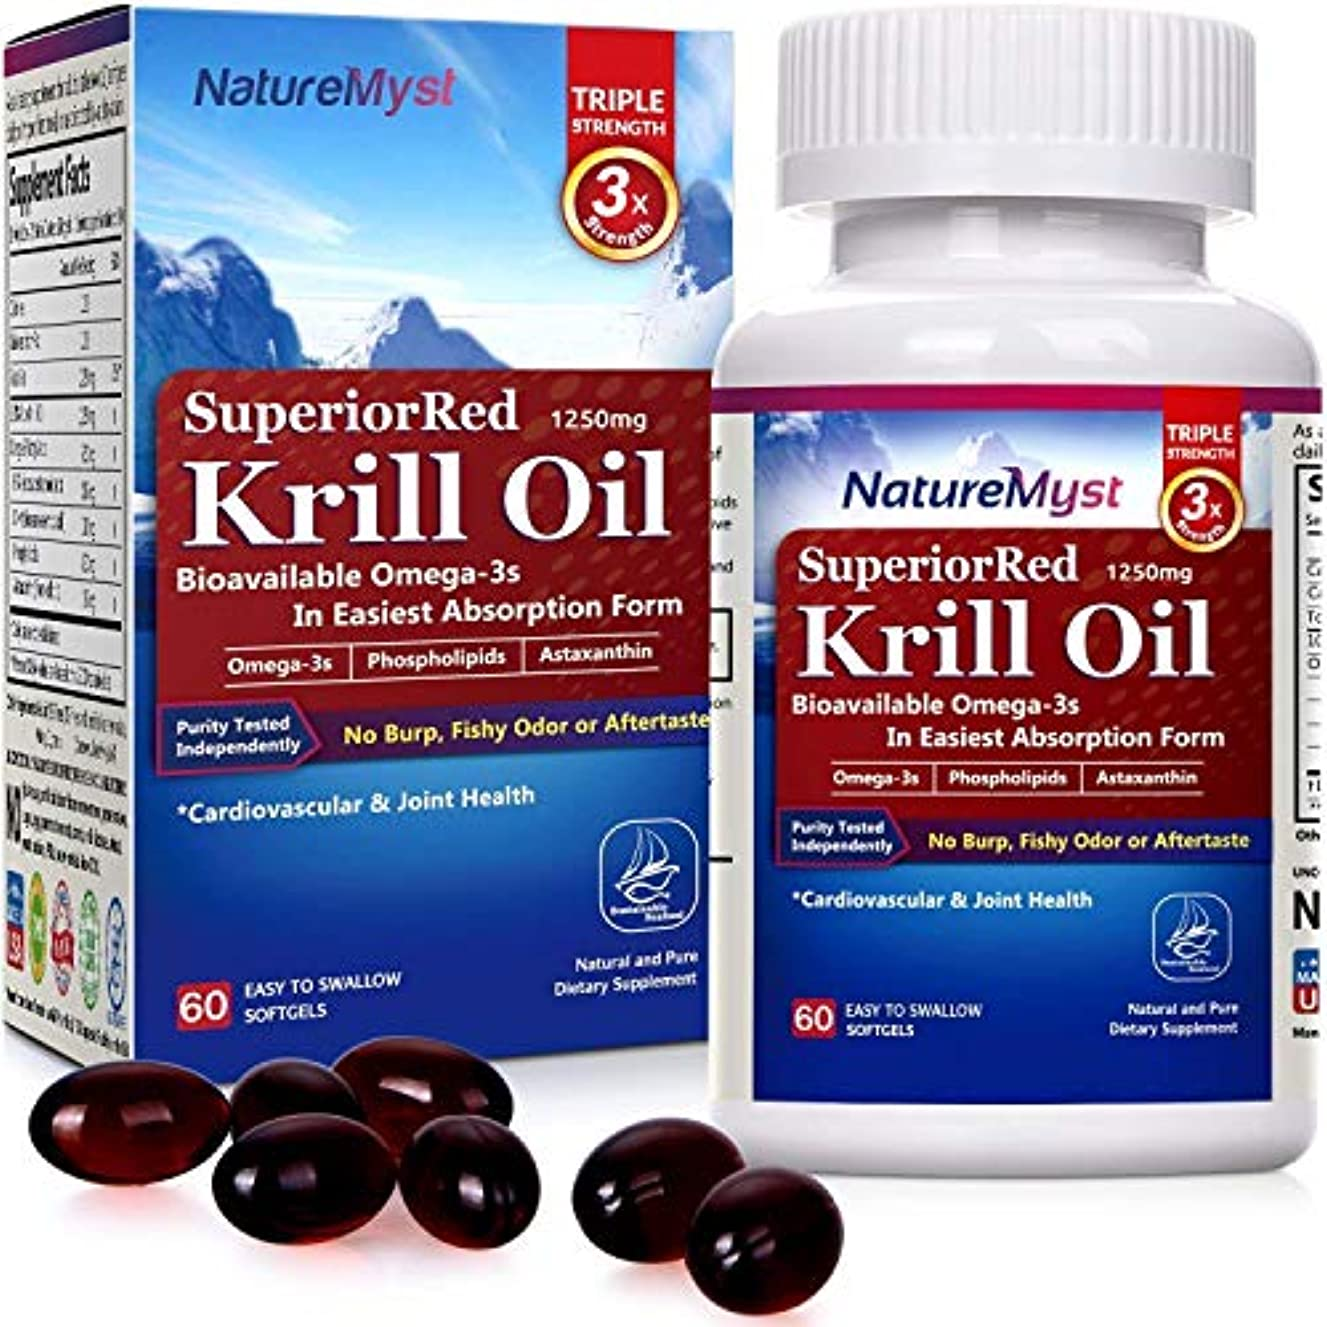 NatureMyst Krill Oil, 1250mg, Professional Grade 60 Liquid Softgels (Cut One in Half to See The Clear Difference)